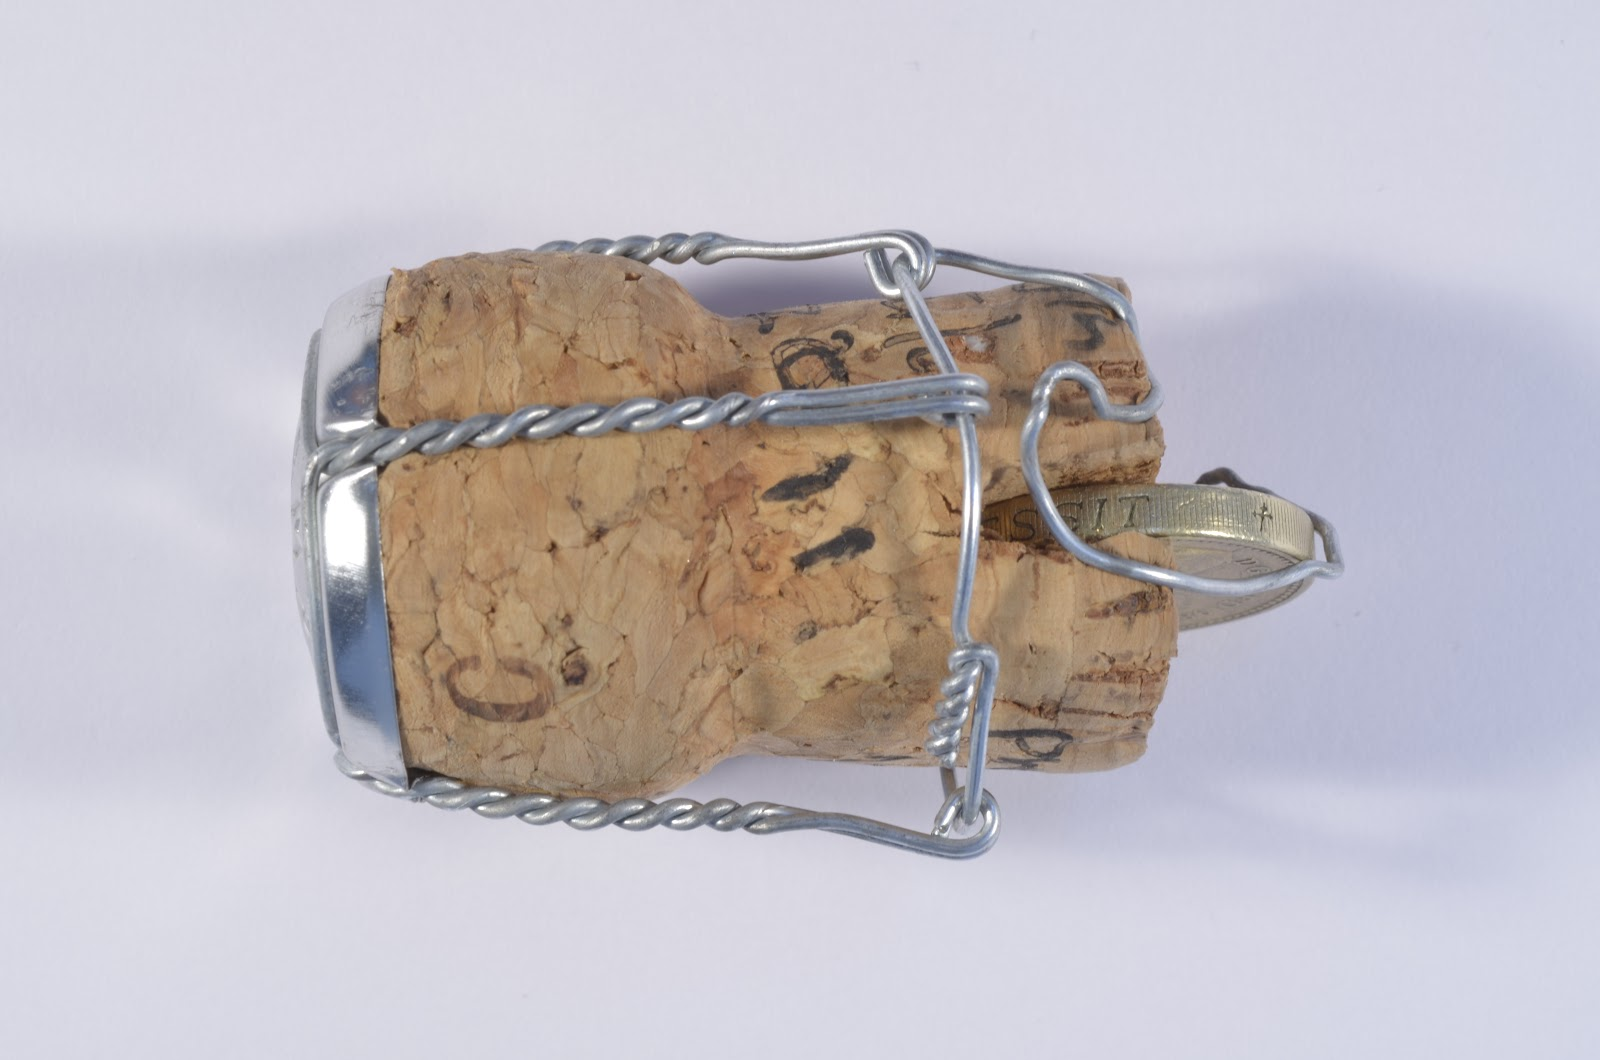 Small Blessings: My Lucky Cork